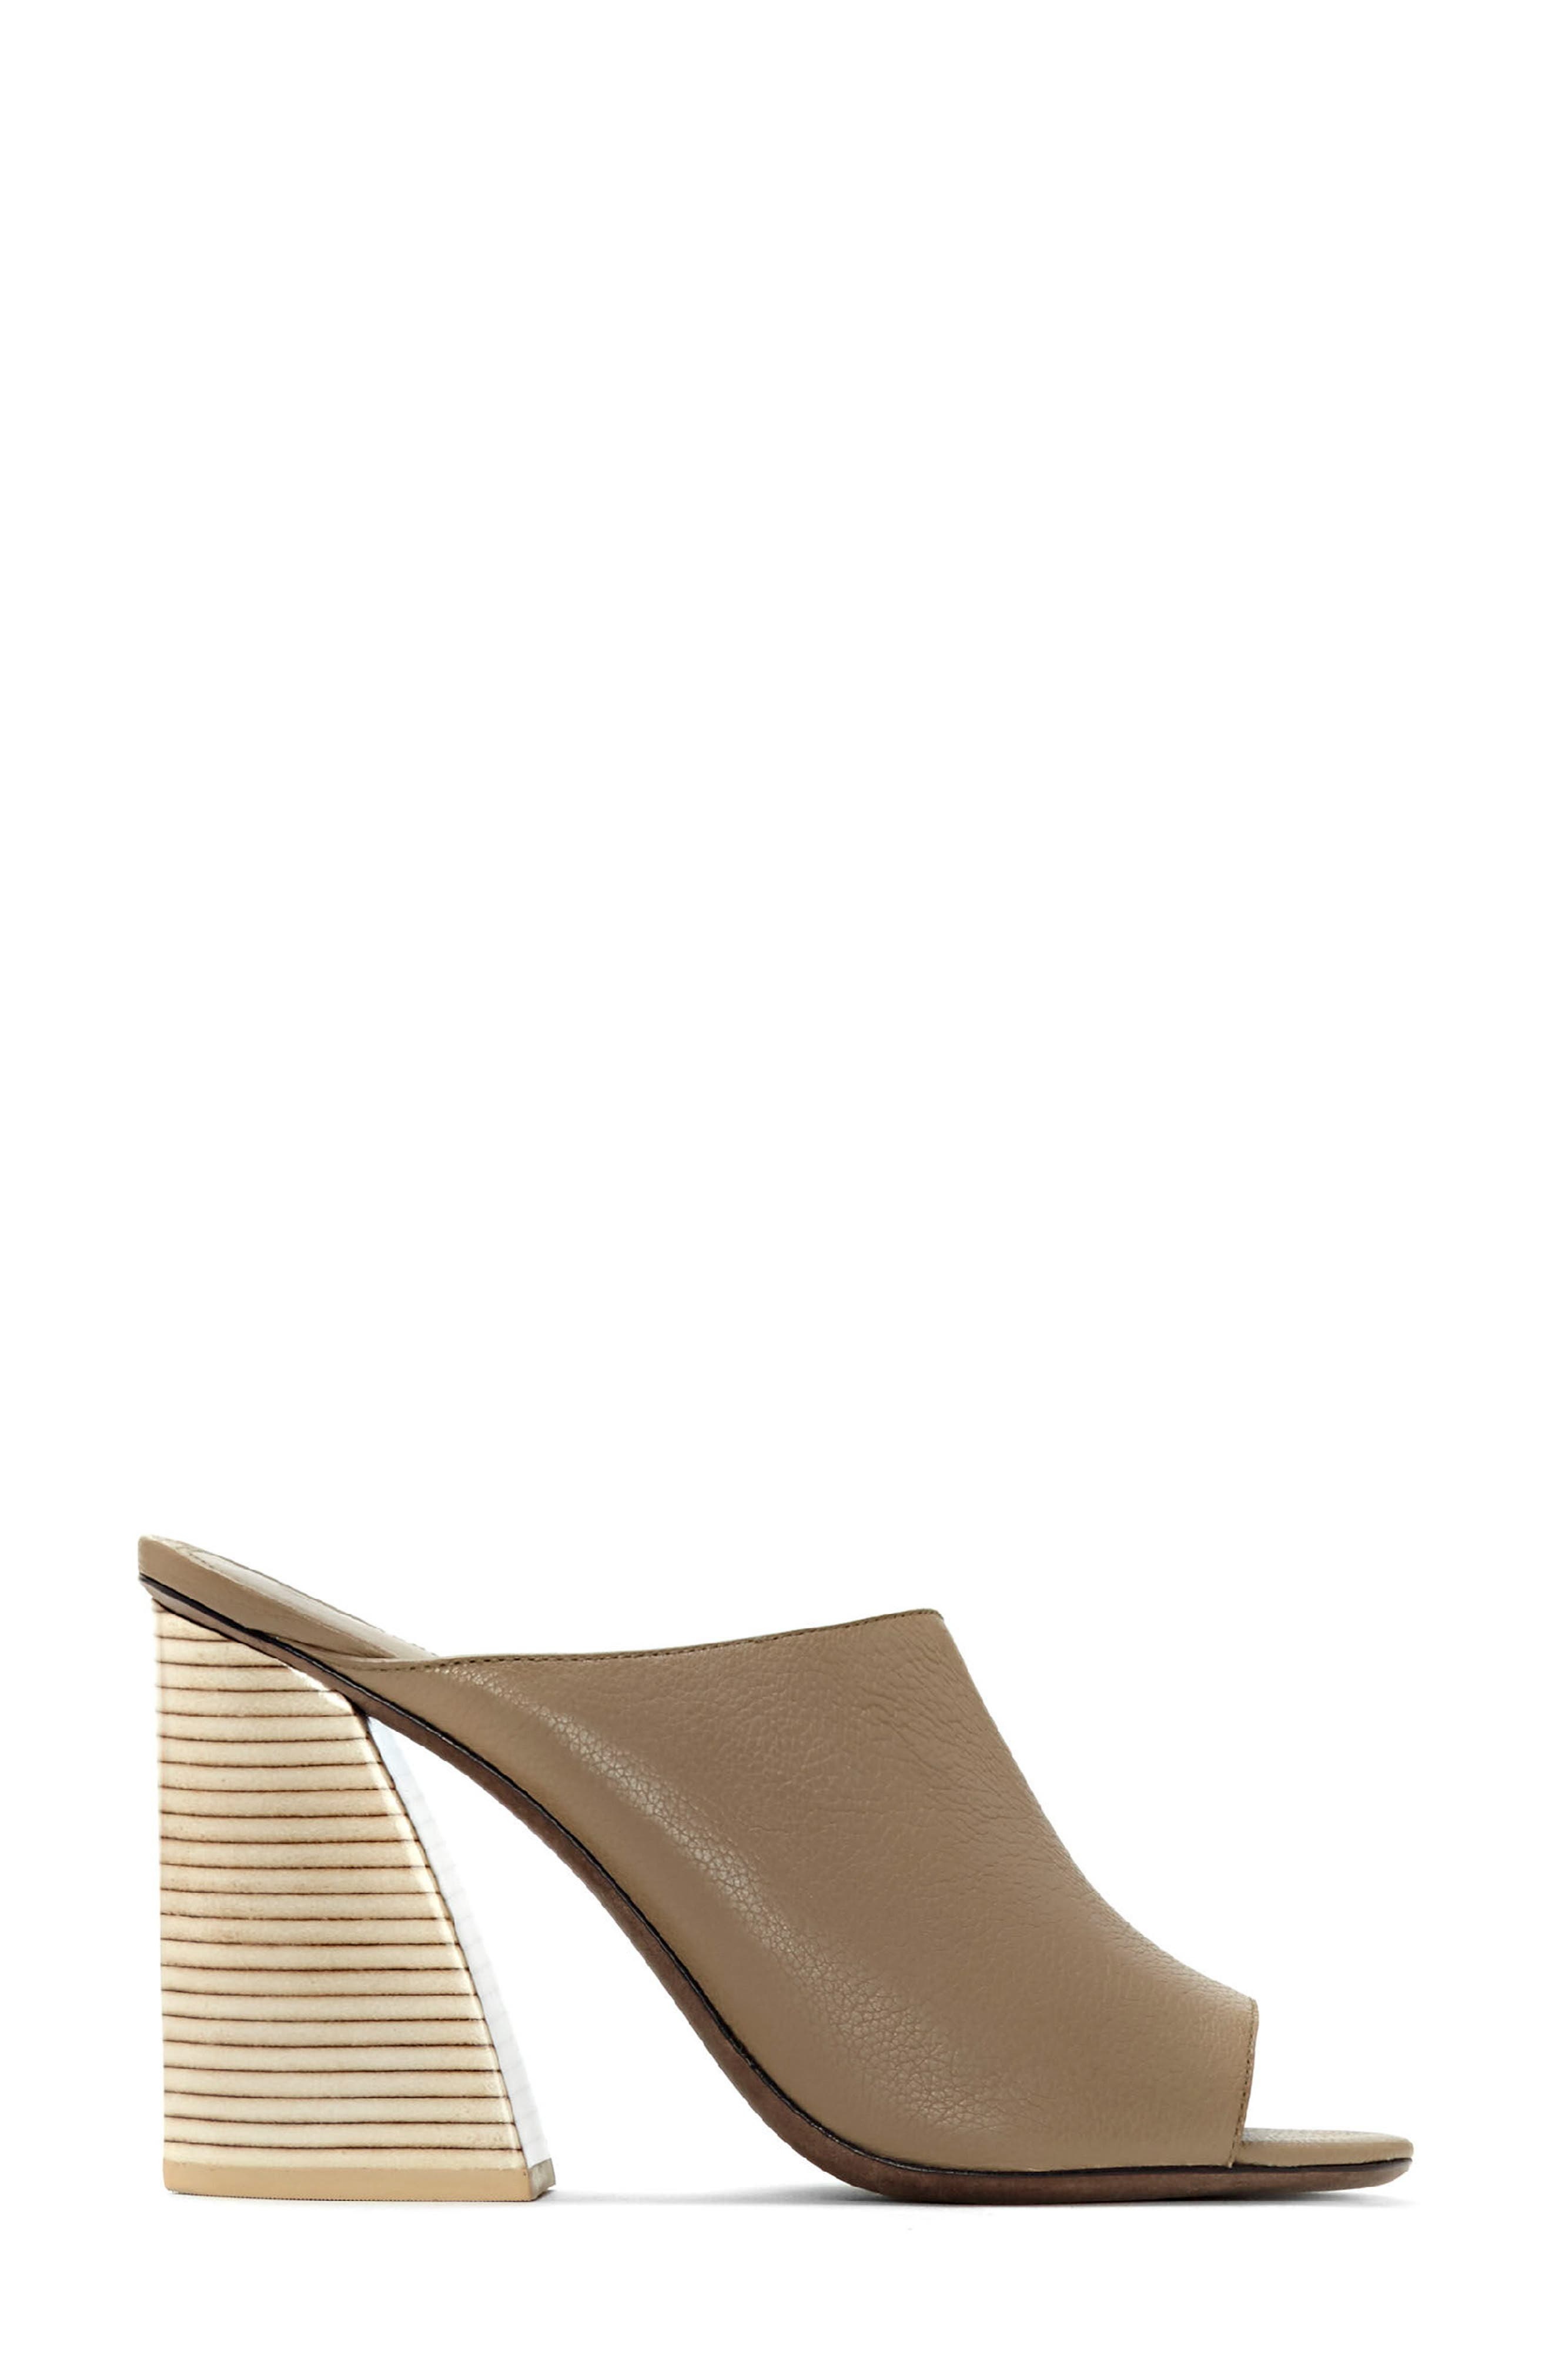 Izar Mule,                             Alternate thumbnail 2, color,                             Taupe Leather